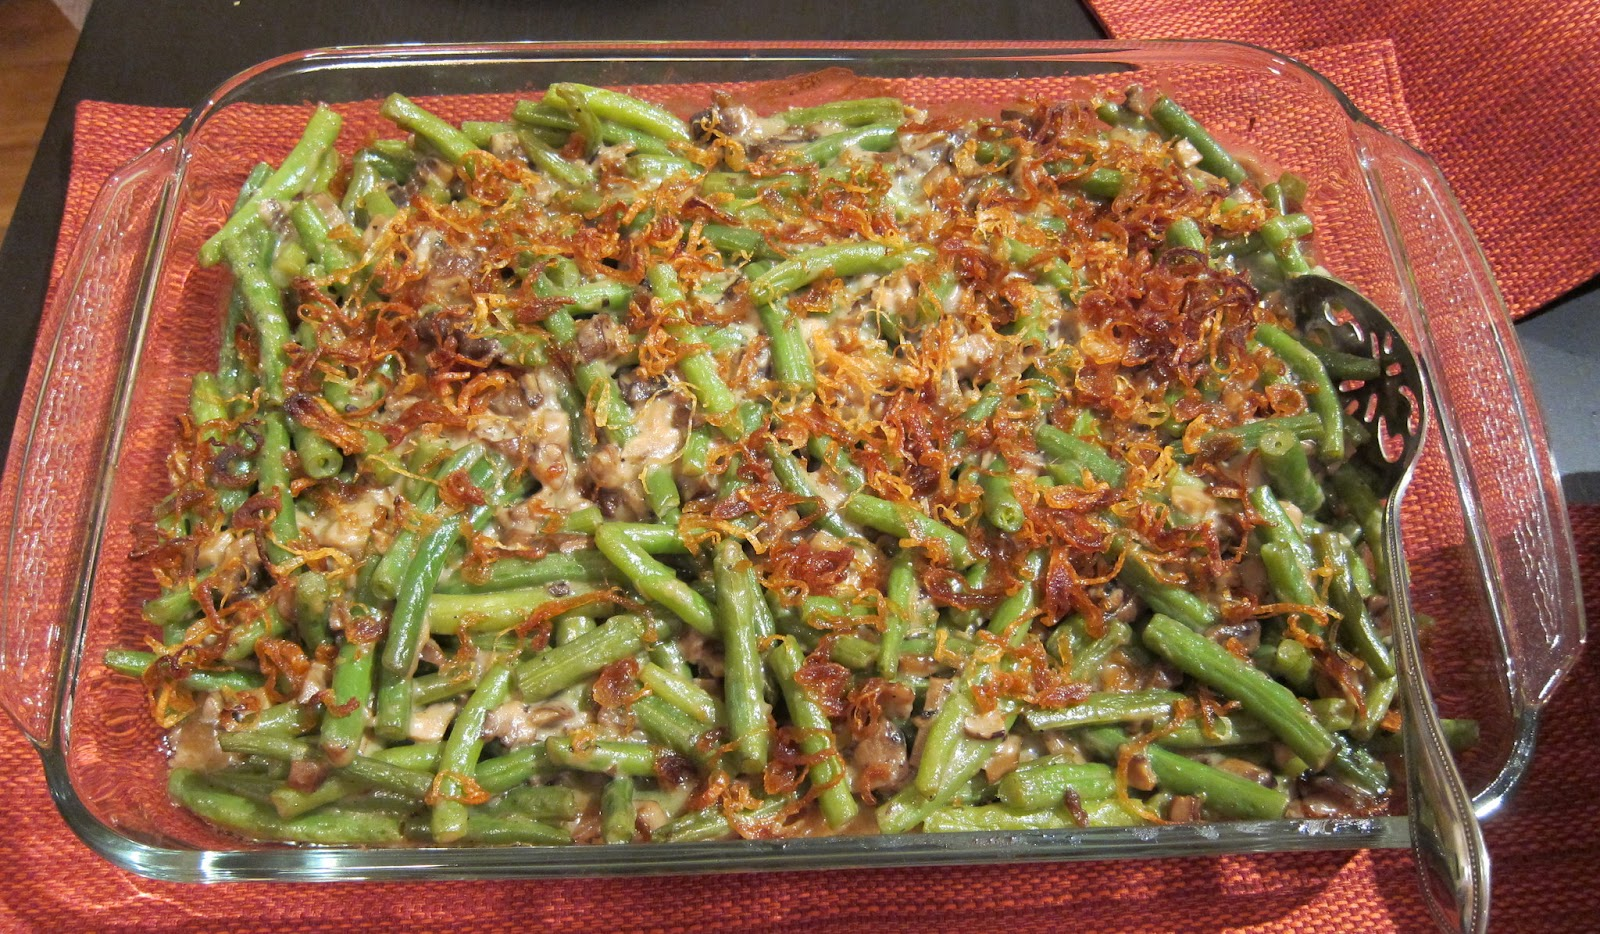 Green Bean Casserole from scratch, topped with fried shallots